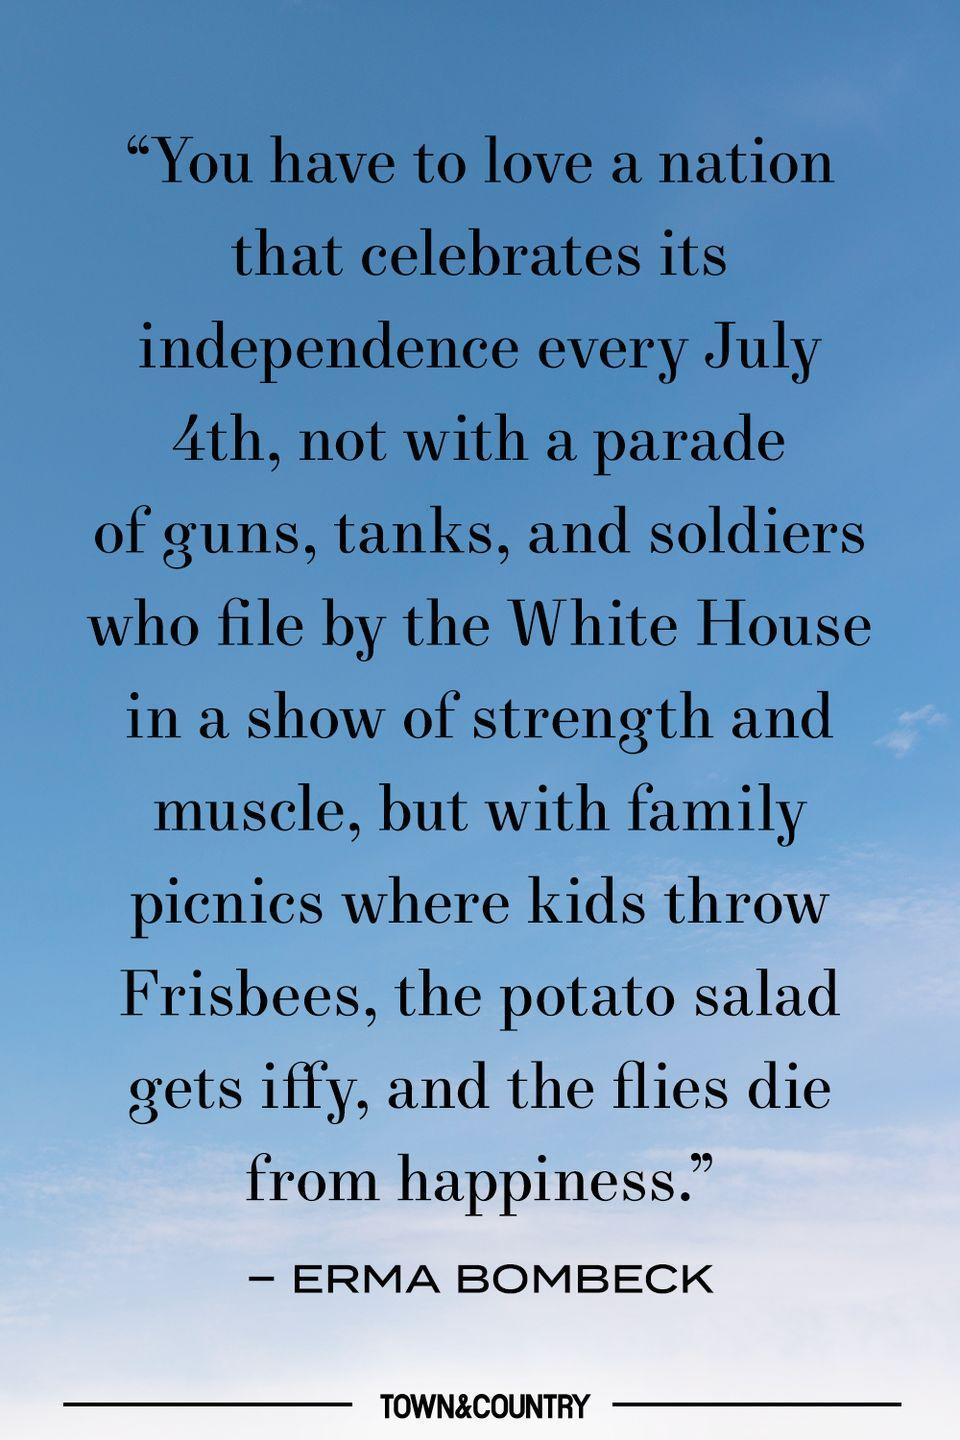 """<p>""""You have to love a nation that celebrates its independence every July 4th, not with a parade of guns, tanks, and soldiers who file by the White House in a show of strength and muscle, but with family picnics were kids throw Frisbees, the potato salad gets iffy, and the flies die from happiness."""" </p><p><em>– Erma Bombeck </em></p>"""